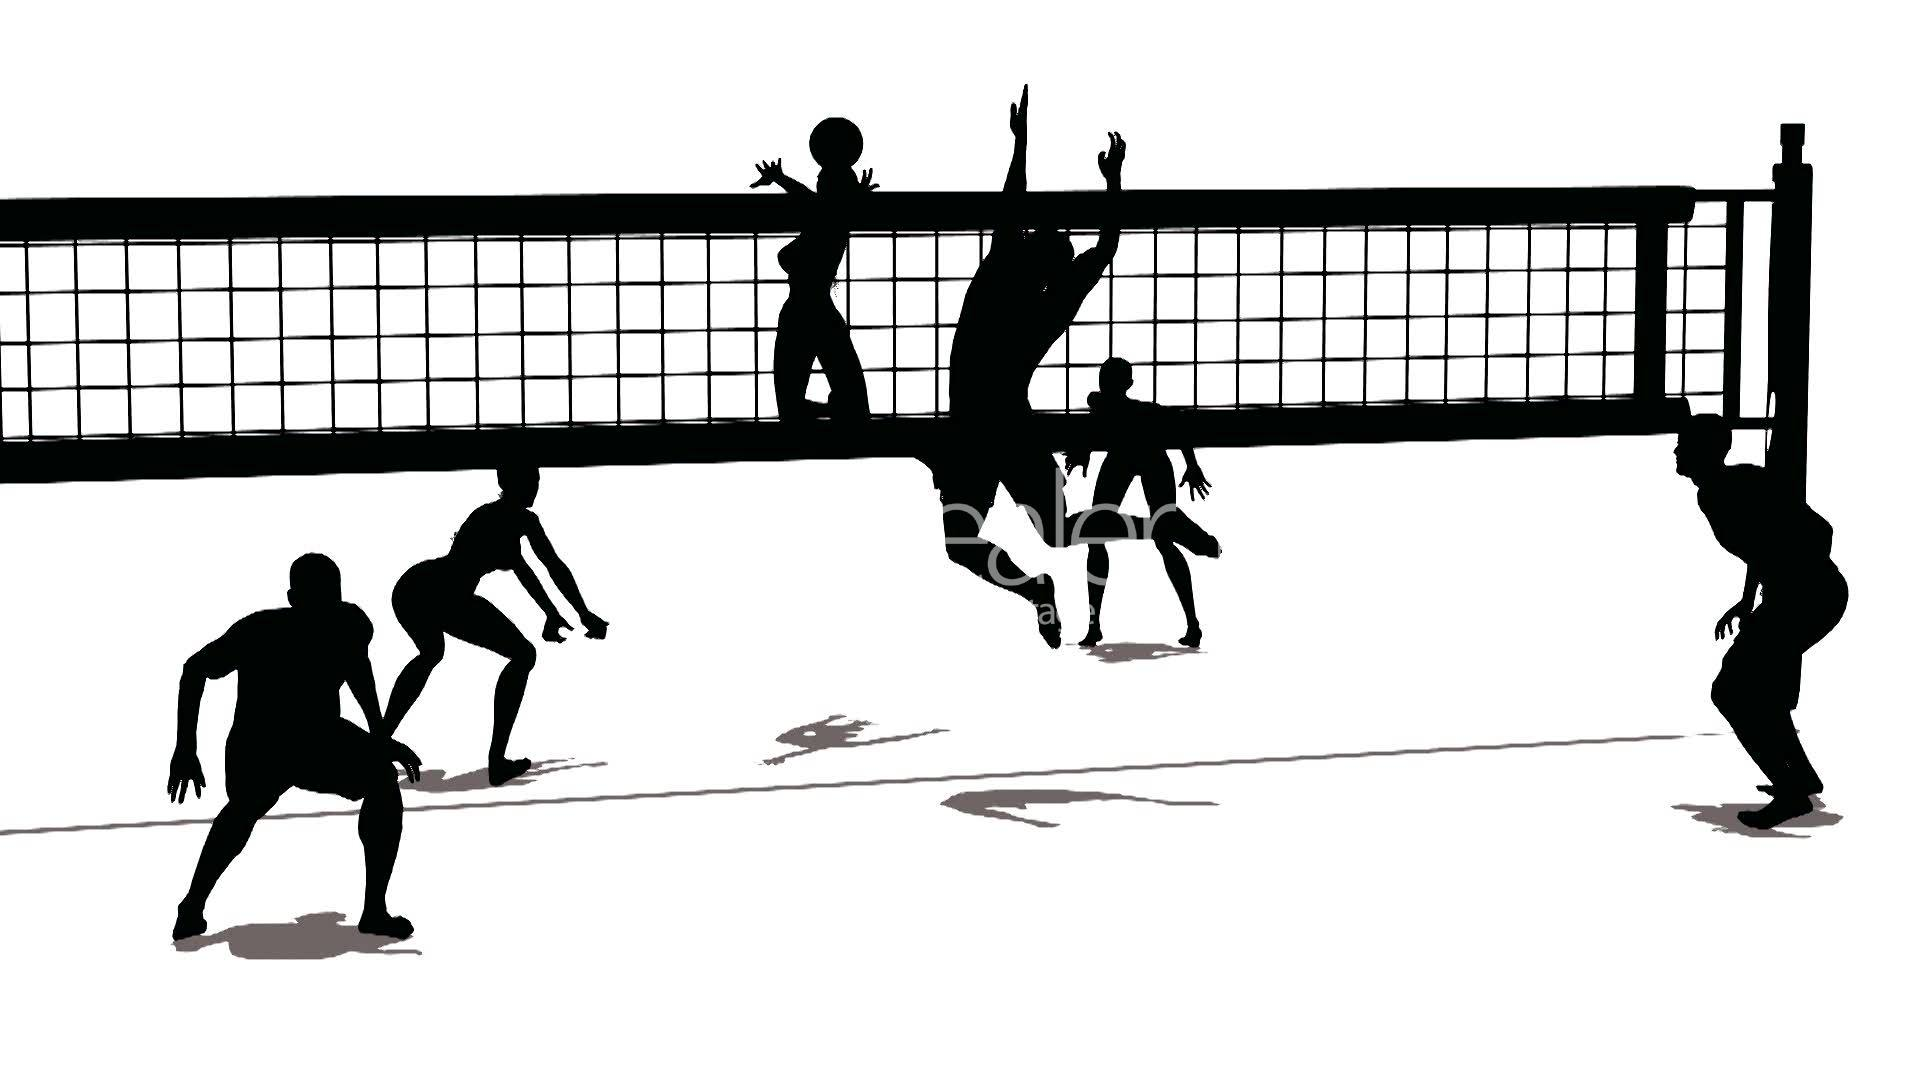 Abstract Triangle Volleyball Player Silhouette Stock: Free Download Best Volleyball